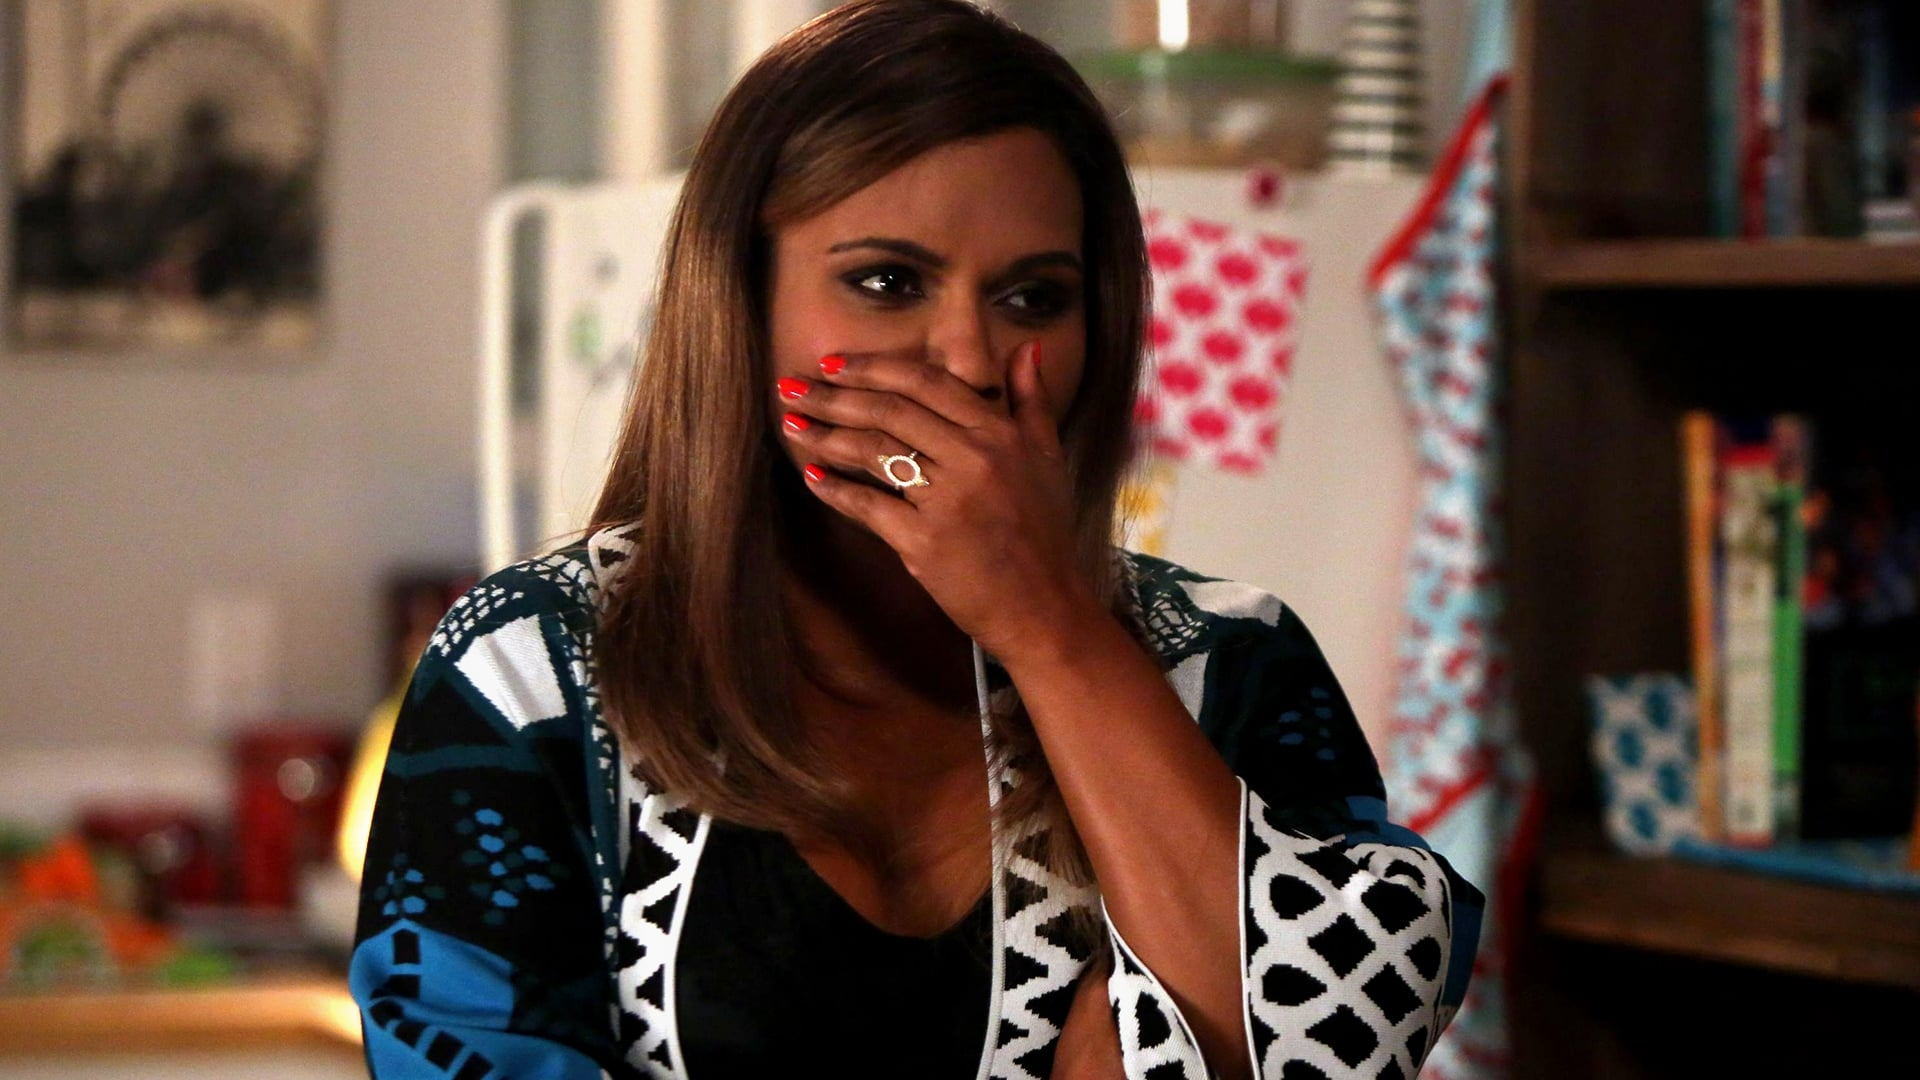 full episodes of the mindy project The mindy project a single-camera comedy, starring mindy kaling, that follows a skilled ob/gyn navigating the tricky waters of both her personal and professional life, as she pursues her dreams of becoming the perfect woman, finding the perfect man and getting her perfect romantic comedy ending.